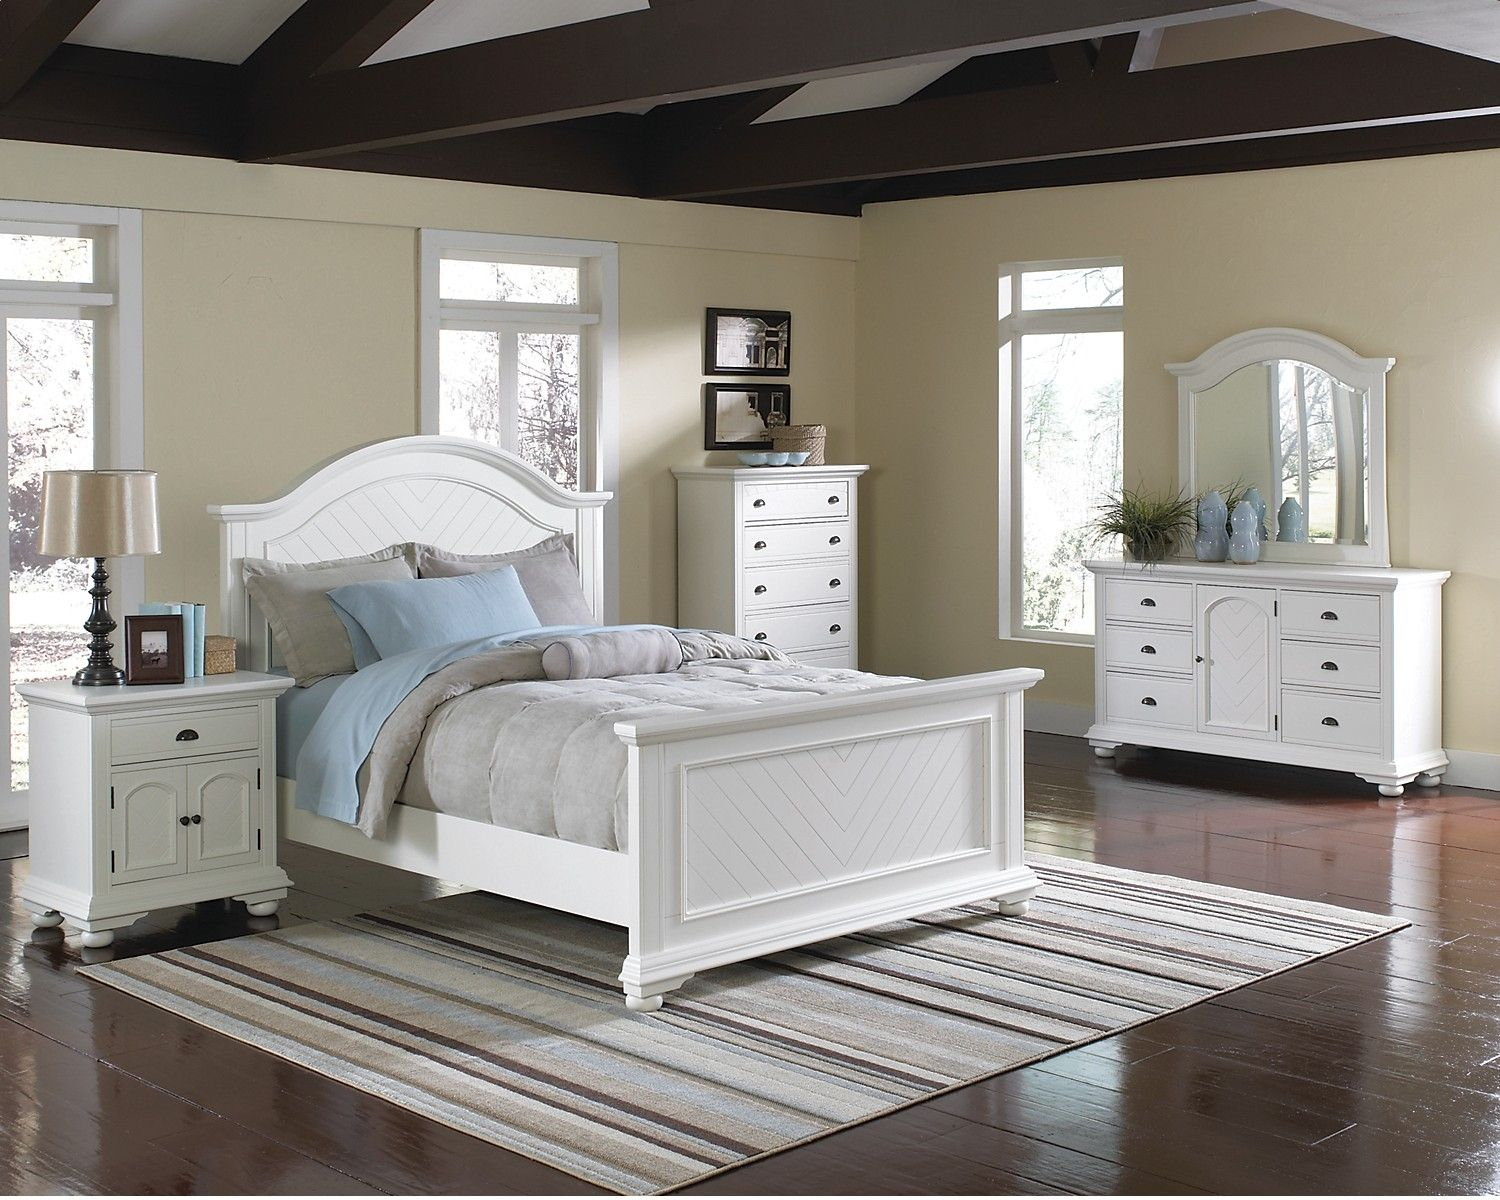 Brook Off White 7 Piece Full Bedroom Set The Brick White Bedroom Set White Bedroom Furniture Bedroom Furniture Sets